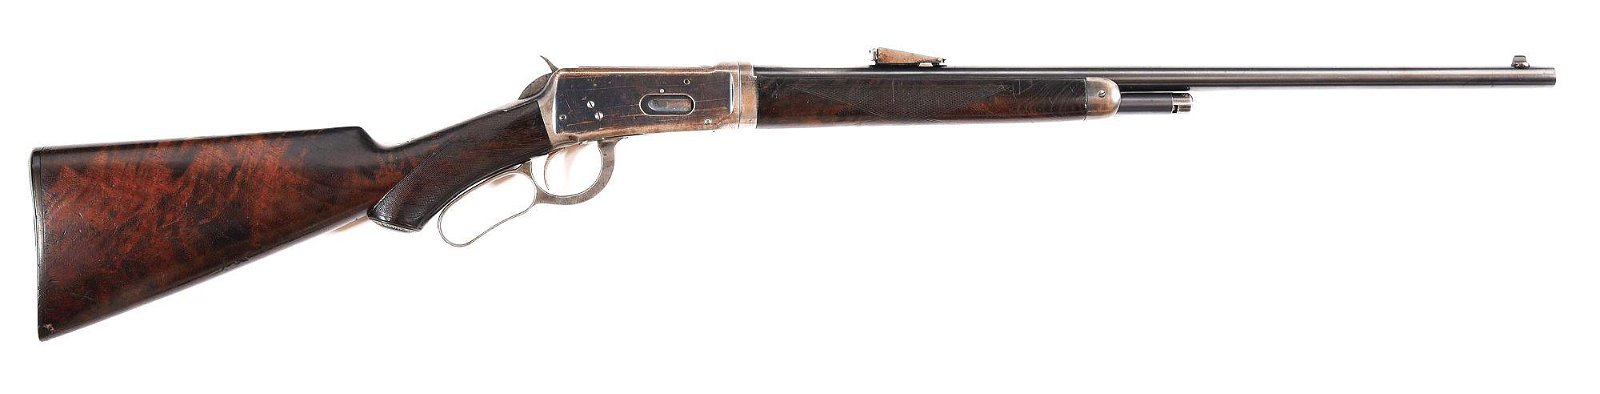 (C) DELUXE MODEL 1894 WINCHESTER TAKE-DOWN LEVER ACTION